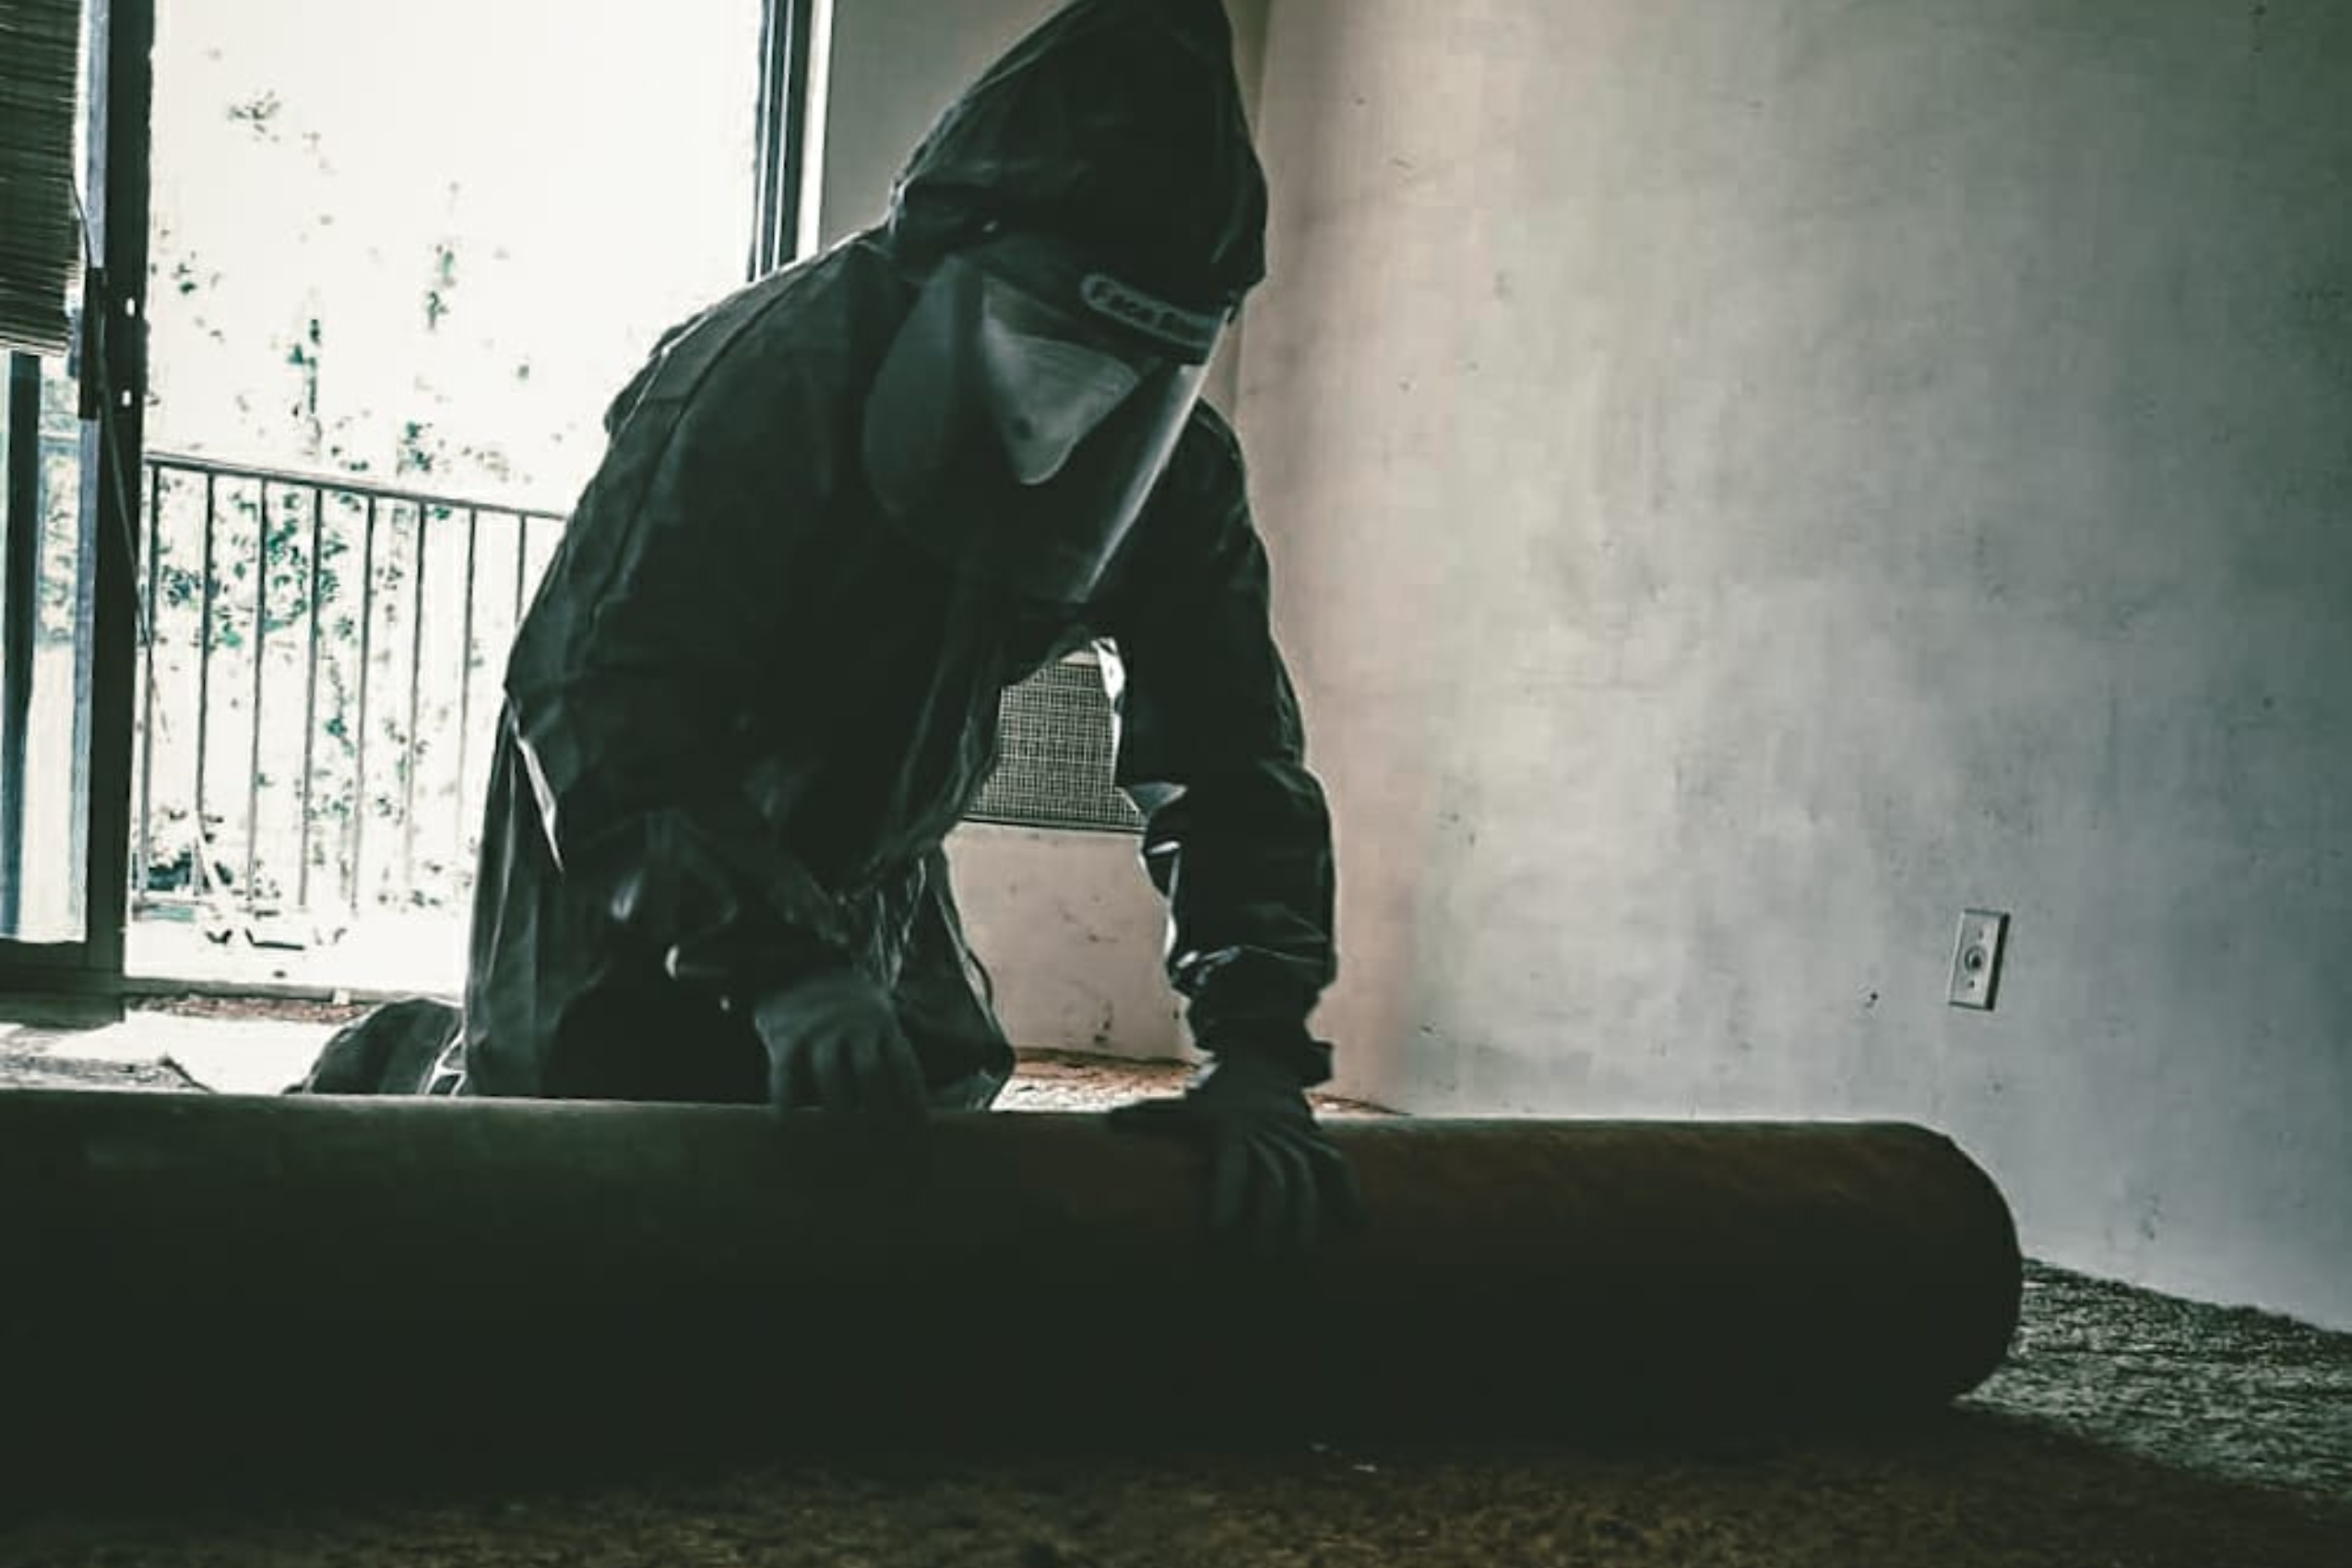 WHO CLEANS UP CRIME SCENES IN SAN DIEGO?